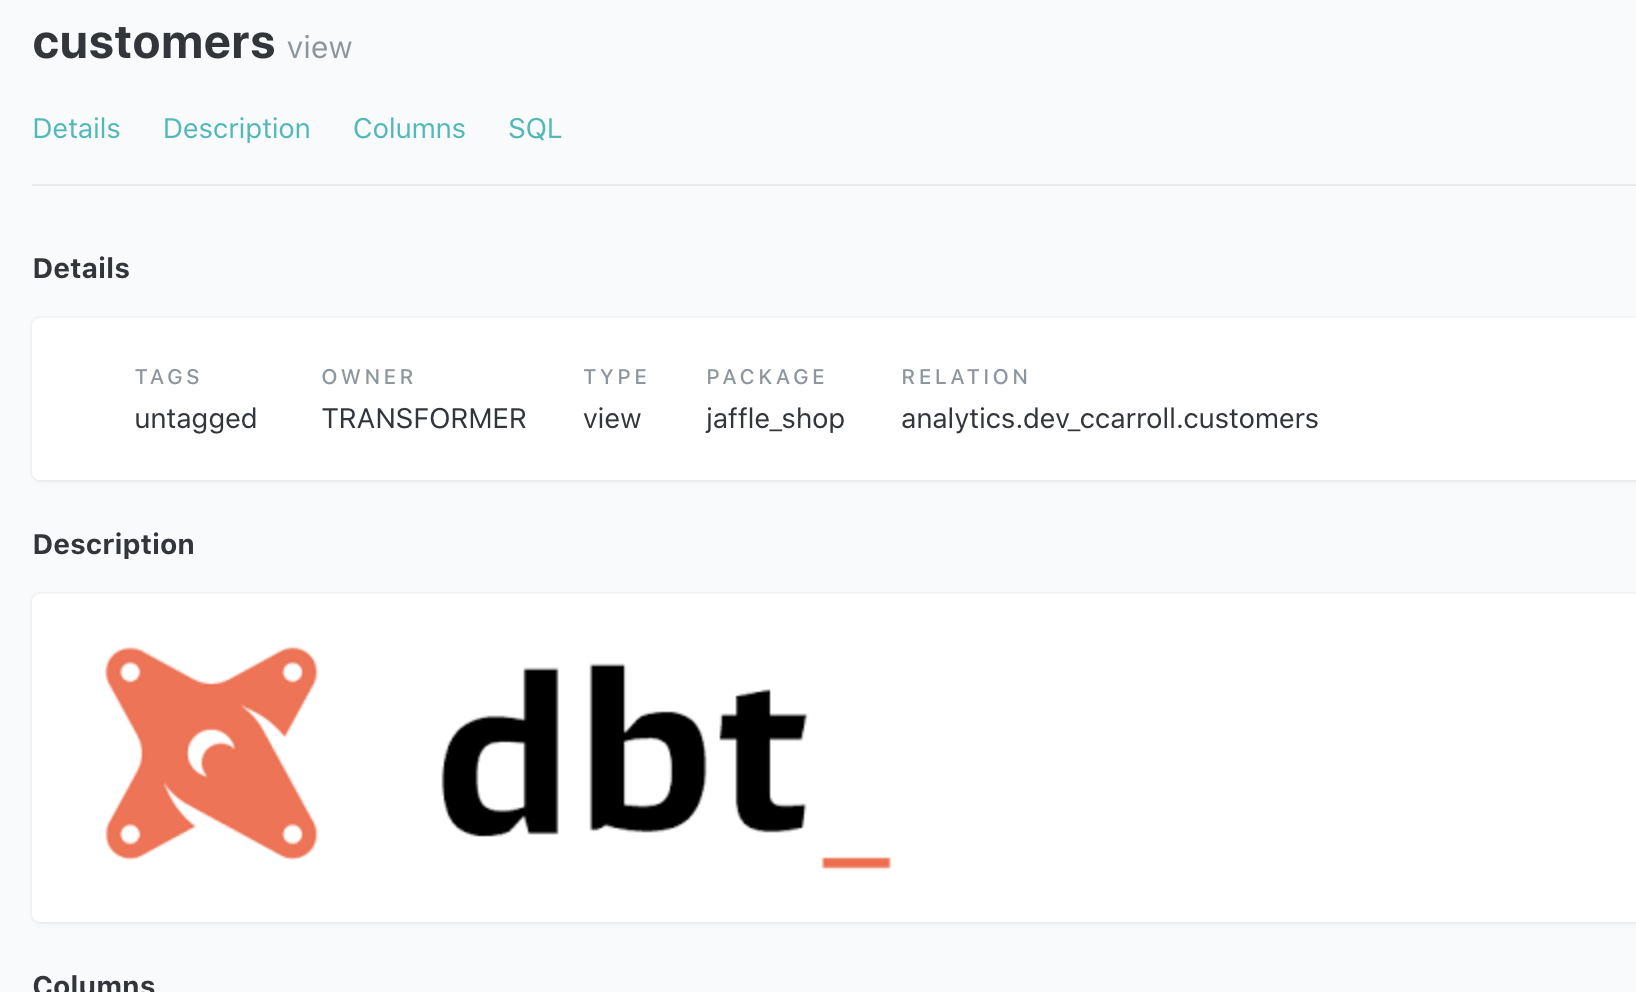 The image at assets/dbt-logo.png is rendered correctly